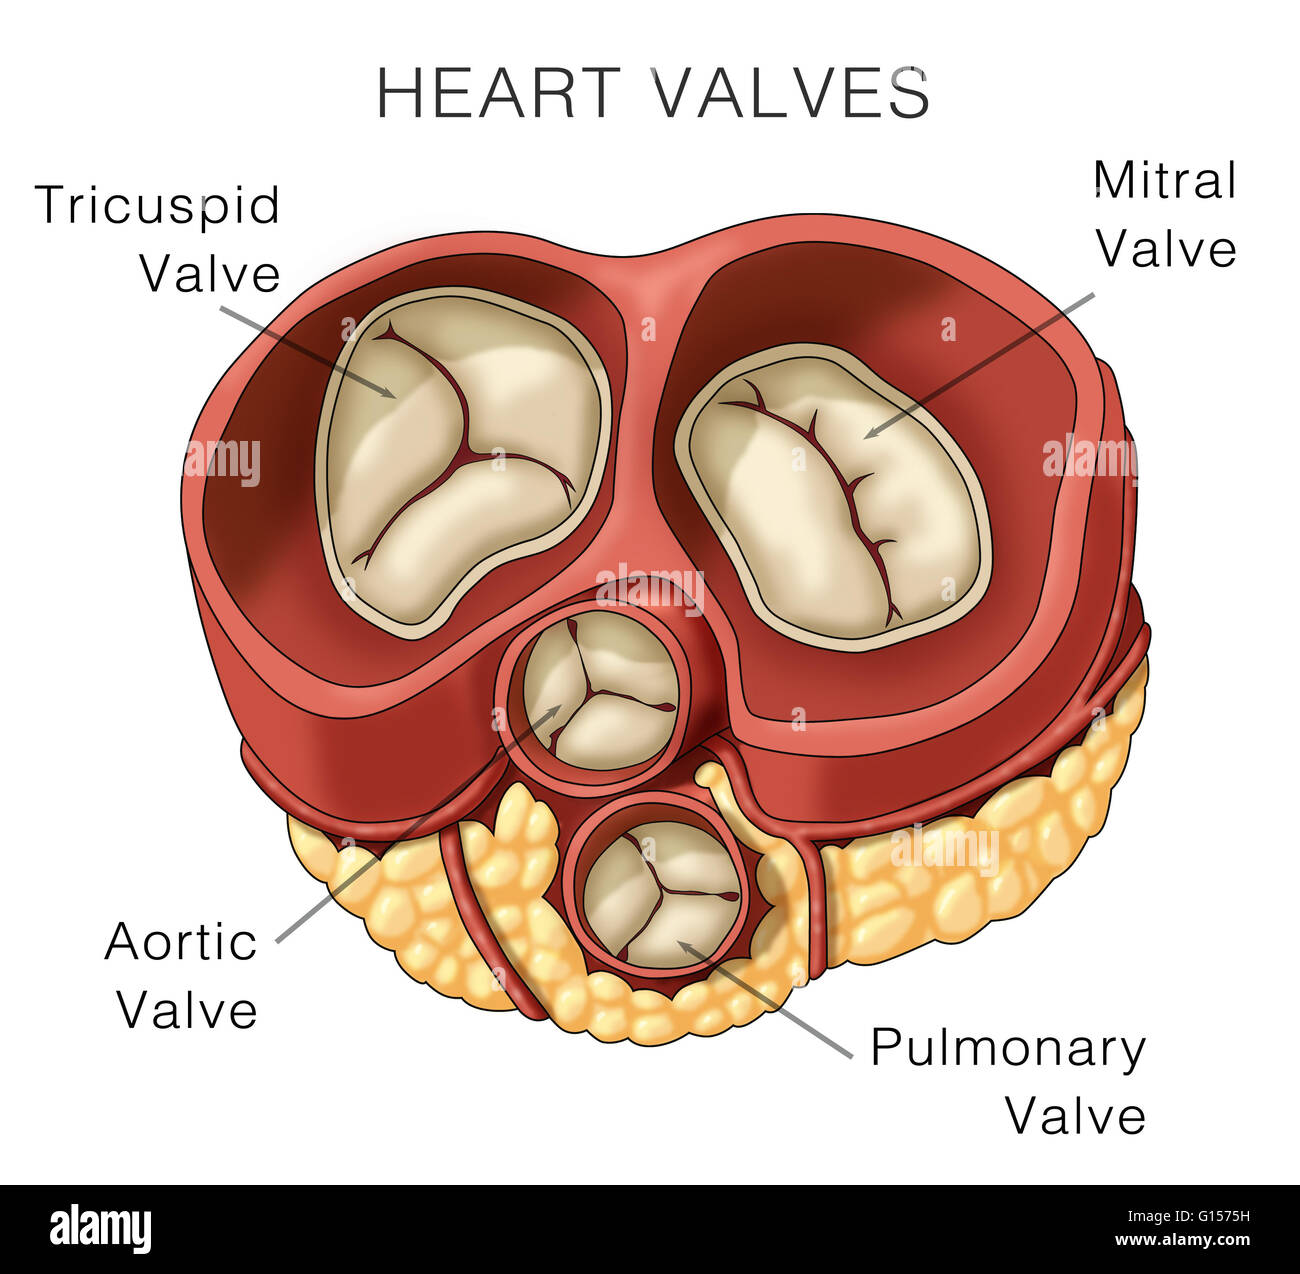 Illustration of heart valves. The image shown includes the mitral ...